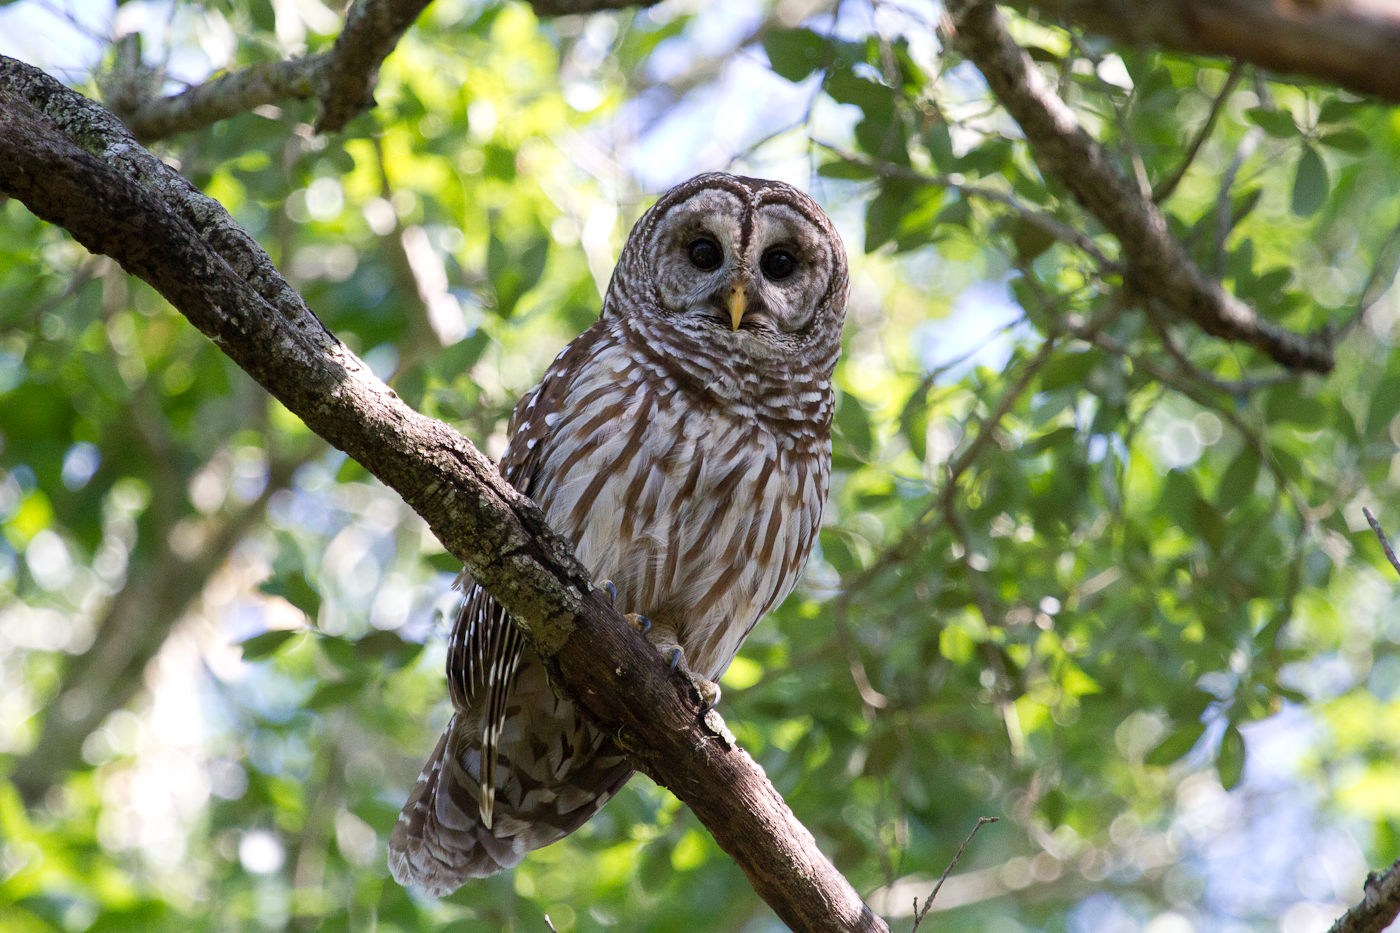 A Barred Owl keeps a watchful eye